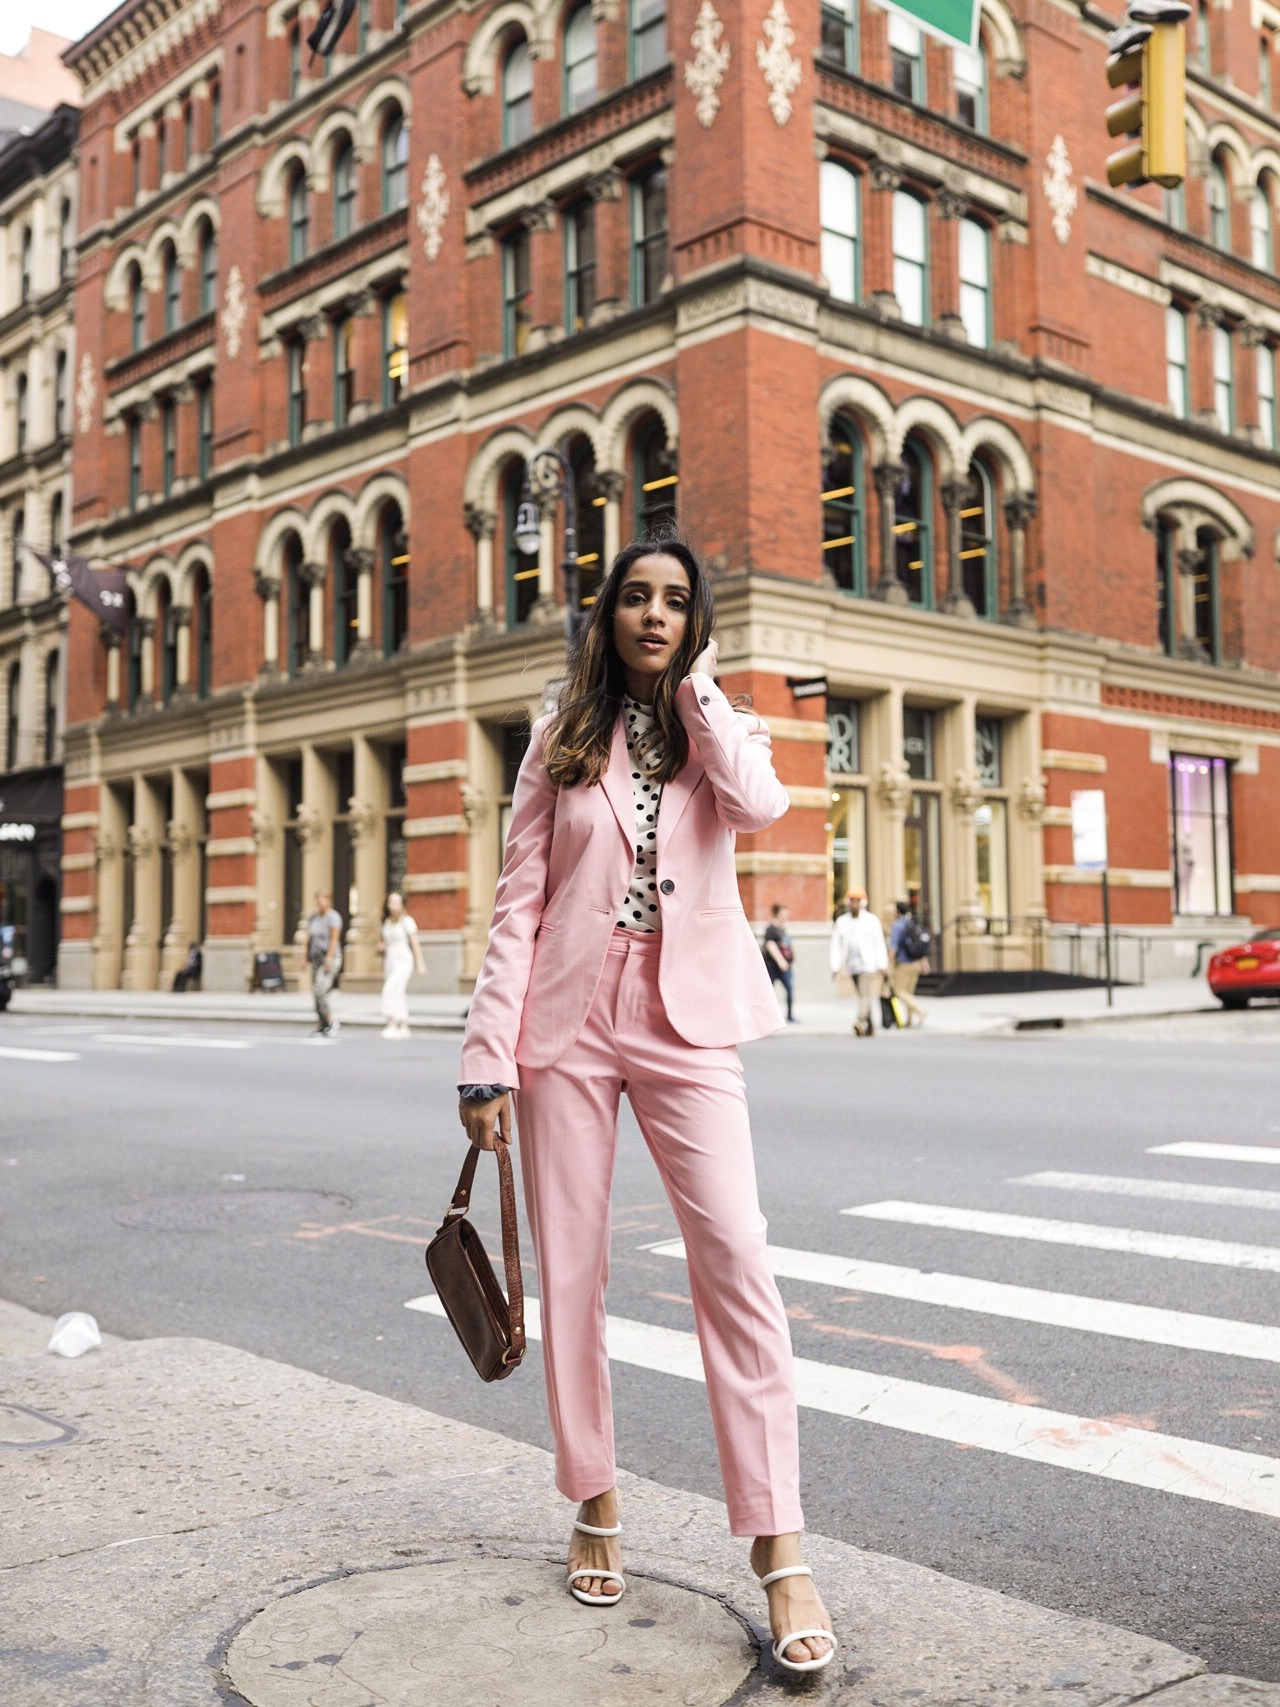 NYFW SS20 Outfits Roundup New York Fashion Week Faiza Inam SincerelyHumble Blog Zara Blazer Suit 1